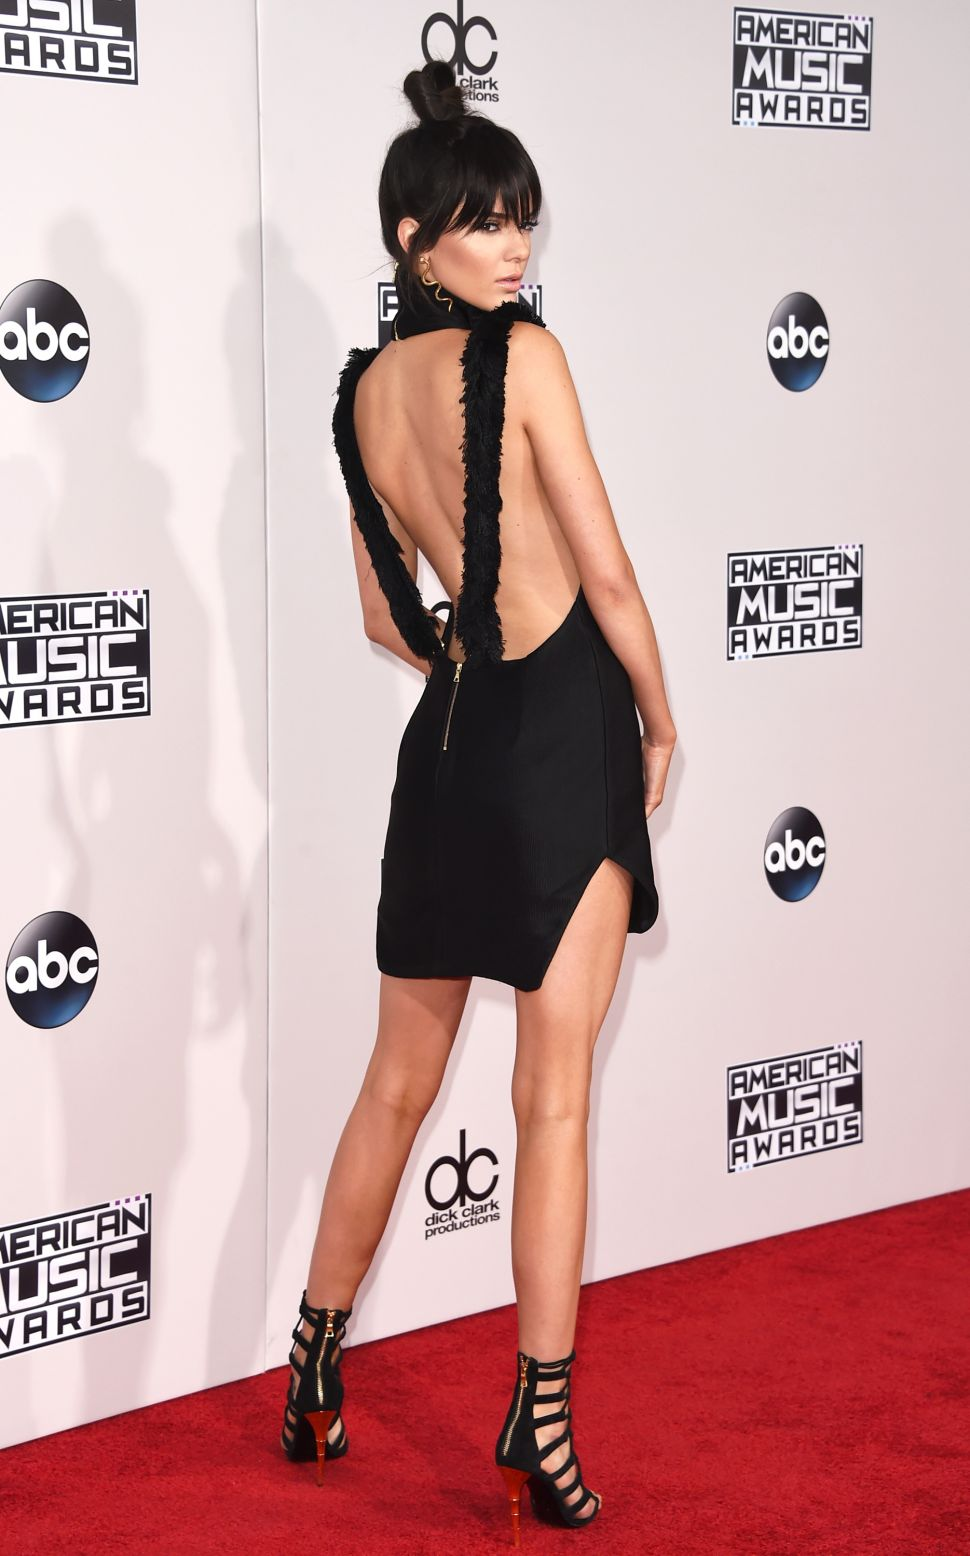 The 5 Most Memorable Outfits From the American Music Awards